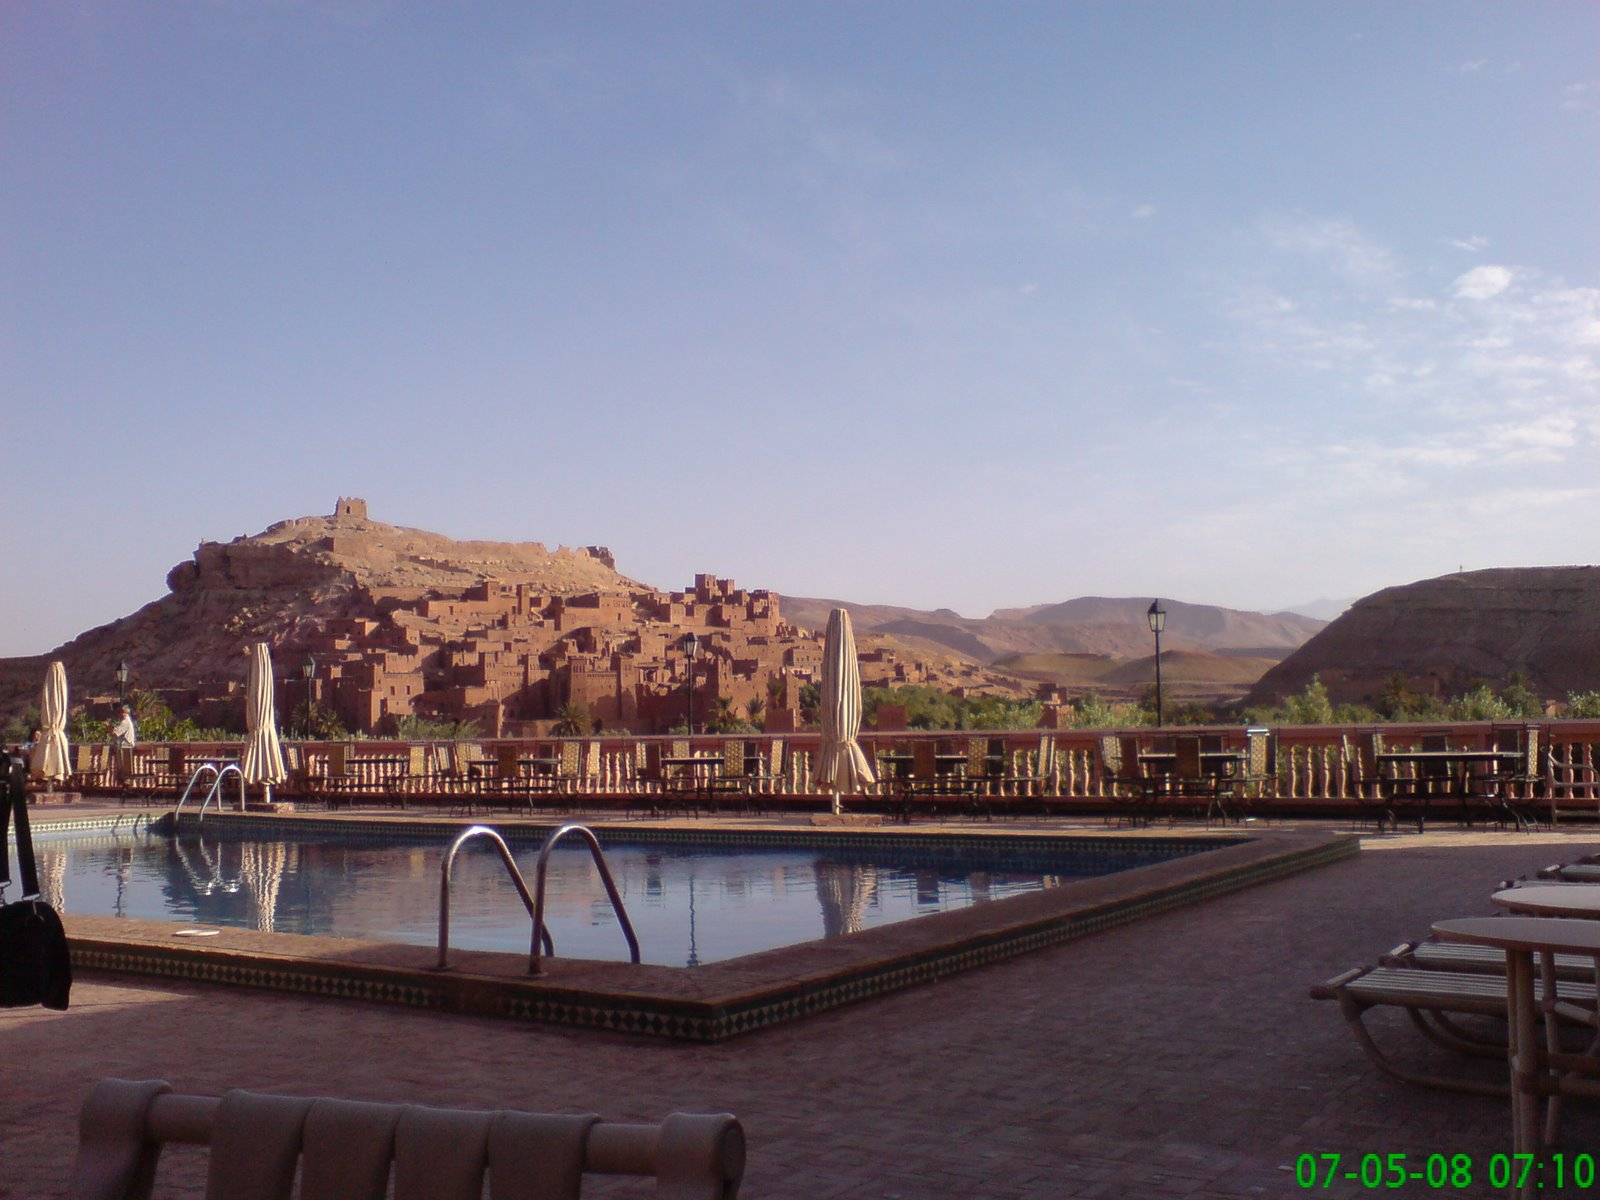 Another breakfast in another hotel with a great view of Ait Benhaddou